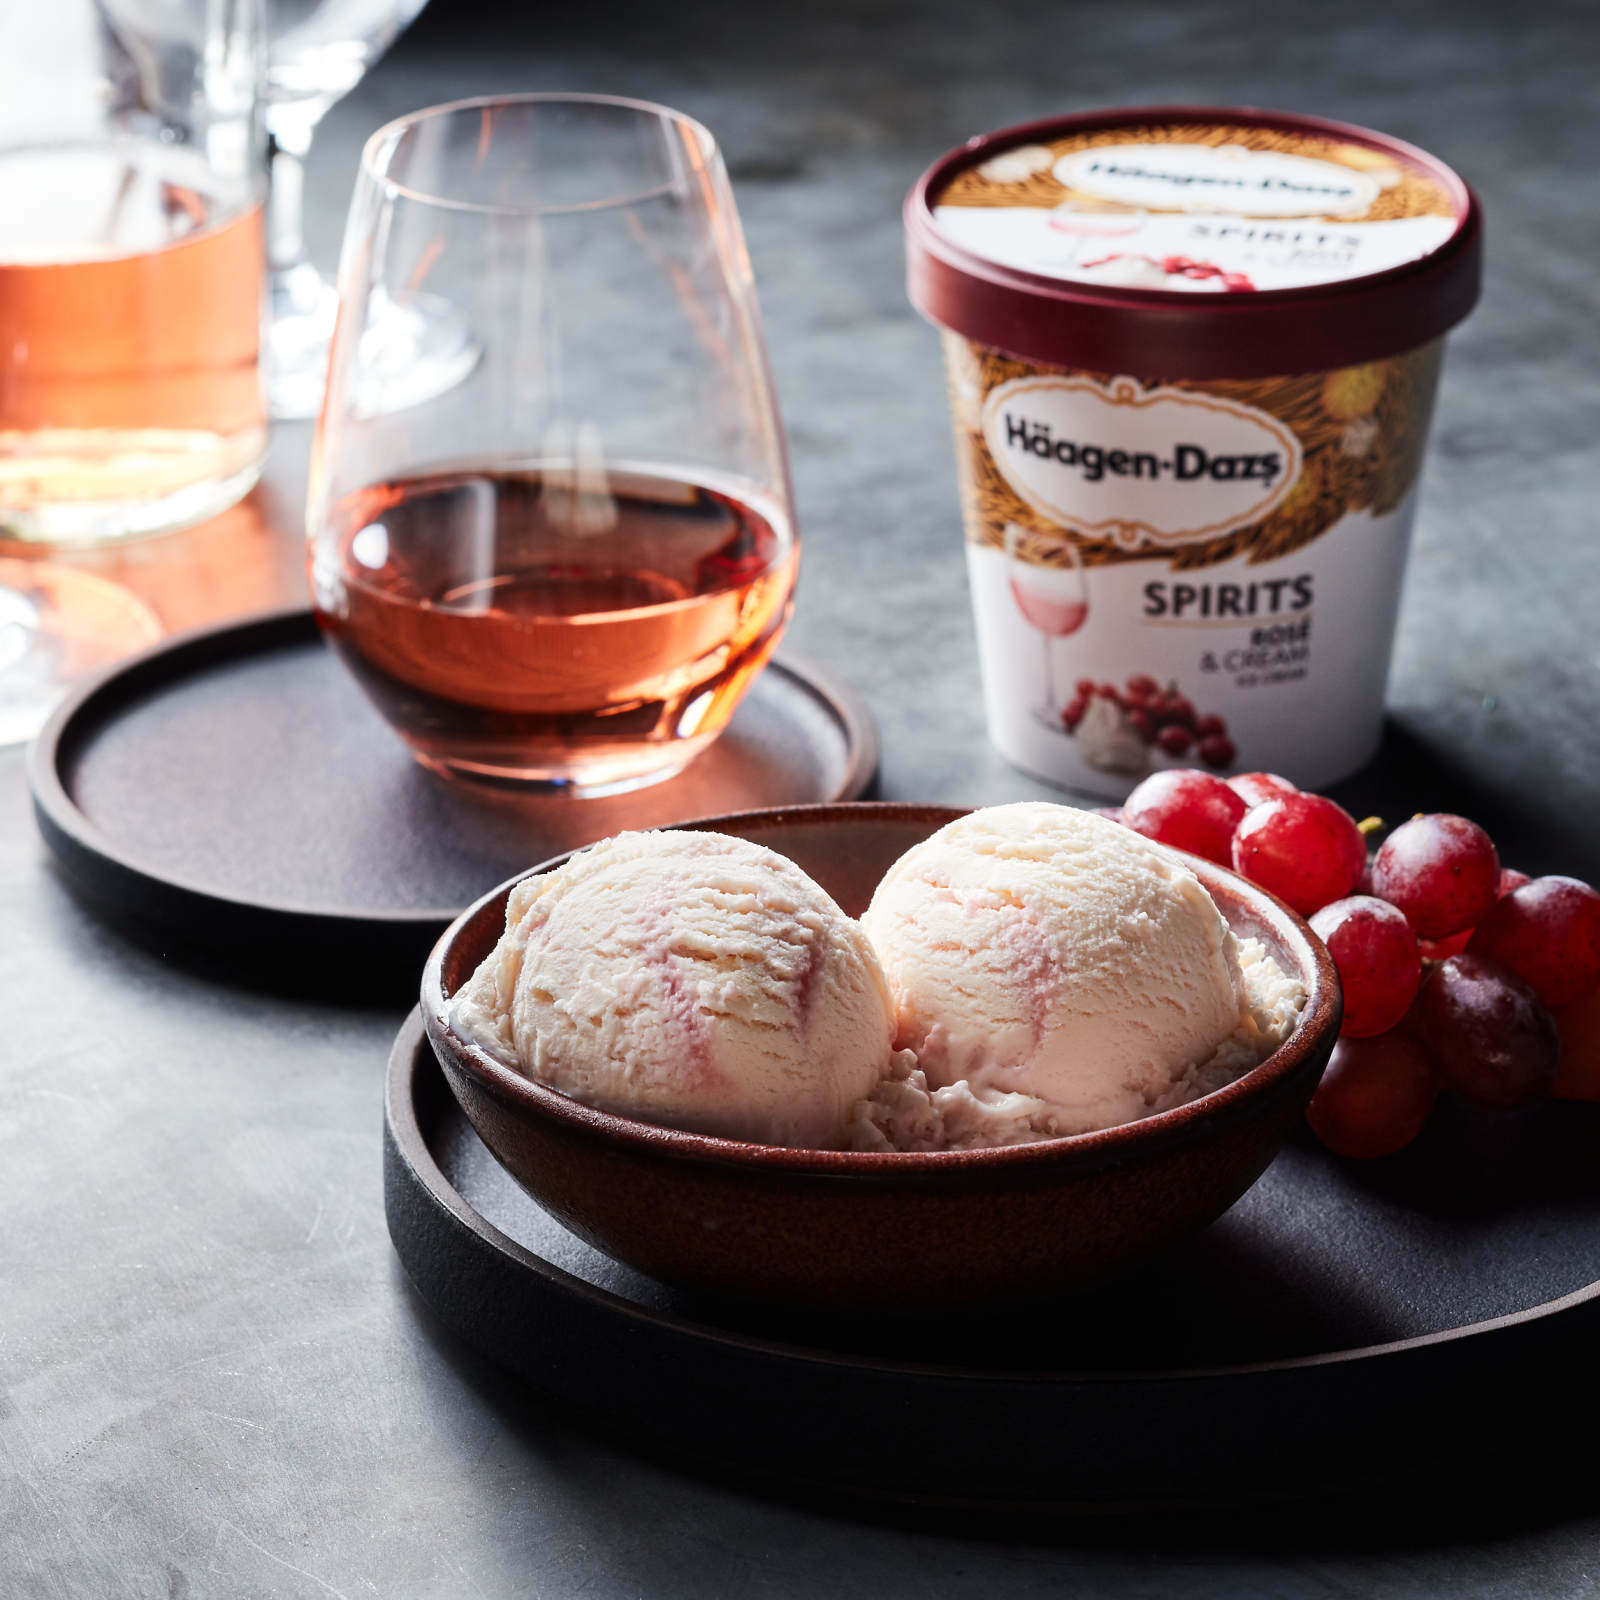 Oddly Satisfying: Häagen-Dazs gives us more spirited perfection with Rosé & Cream ice cream